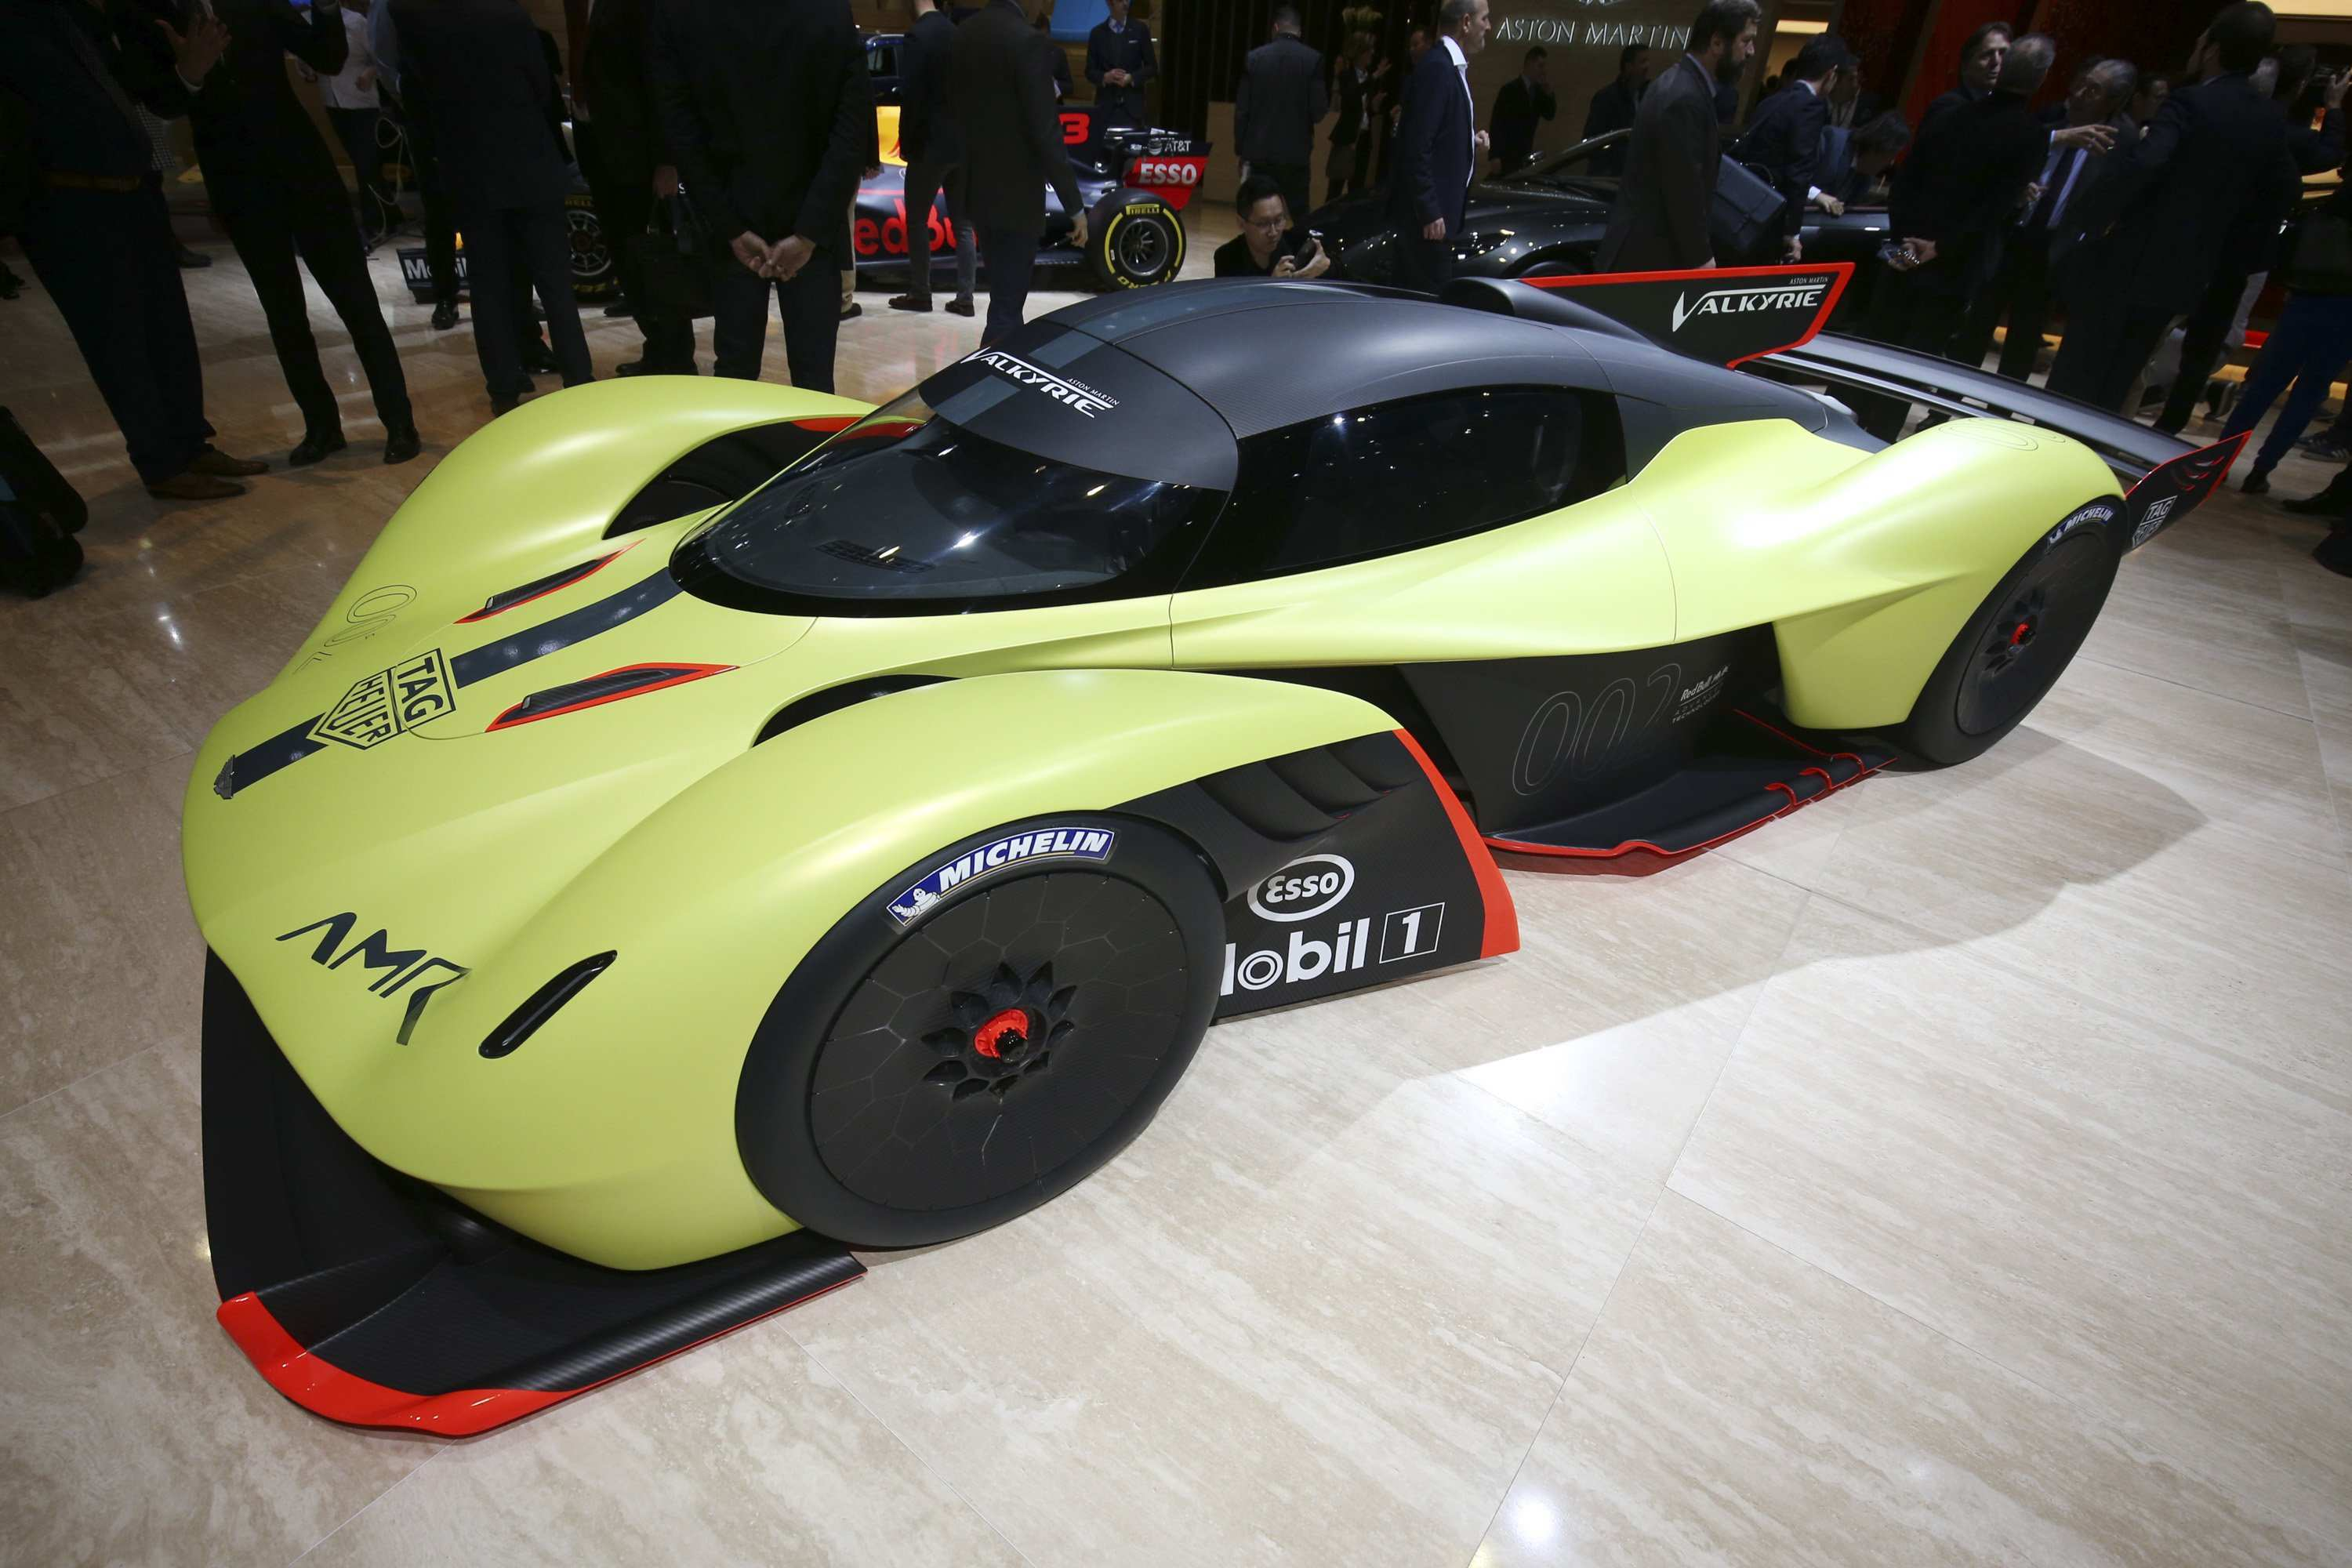 32 Concept of 2019 Aston Martin Valkyrie Specs with 2019 Aston Martin Valkyrie